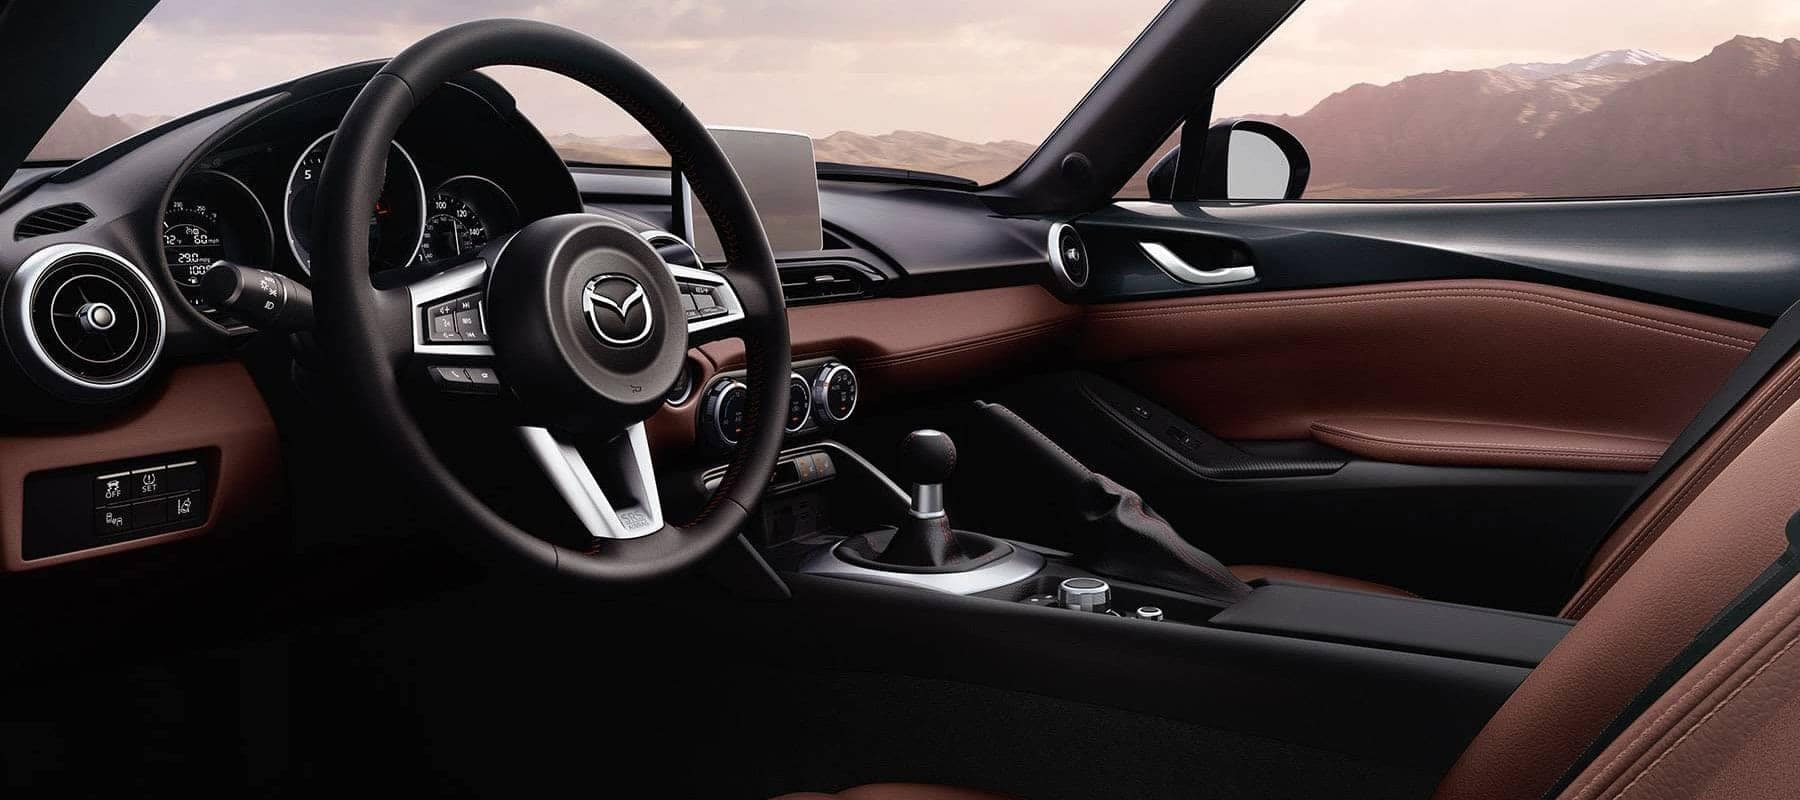 2018-mazda-mx-5-miata-interior-dashboard